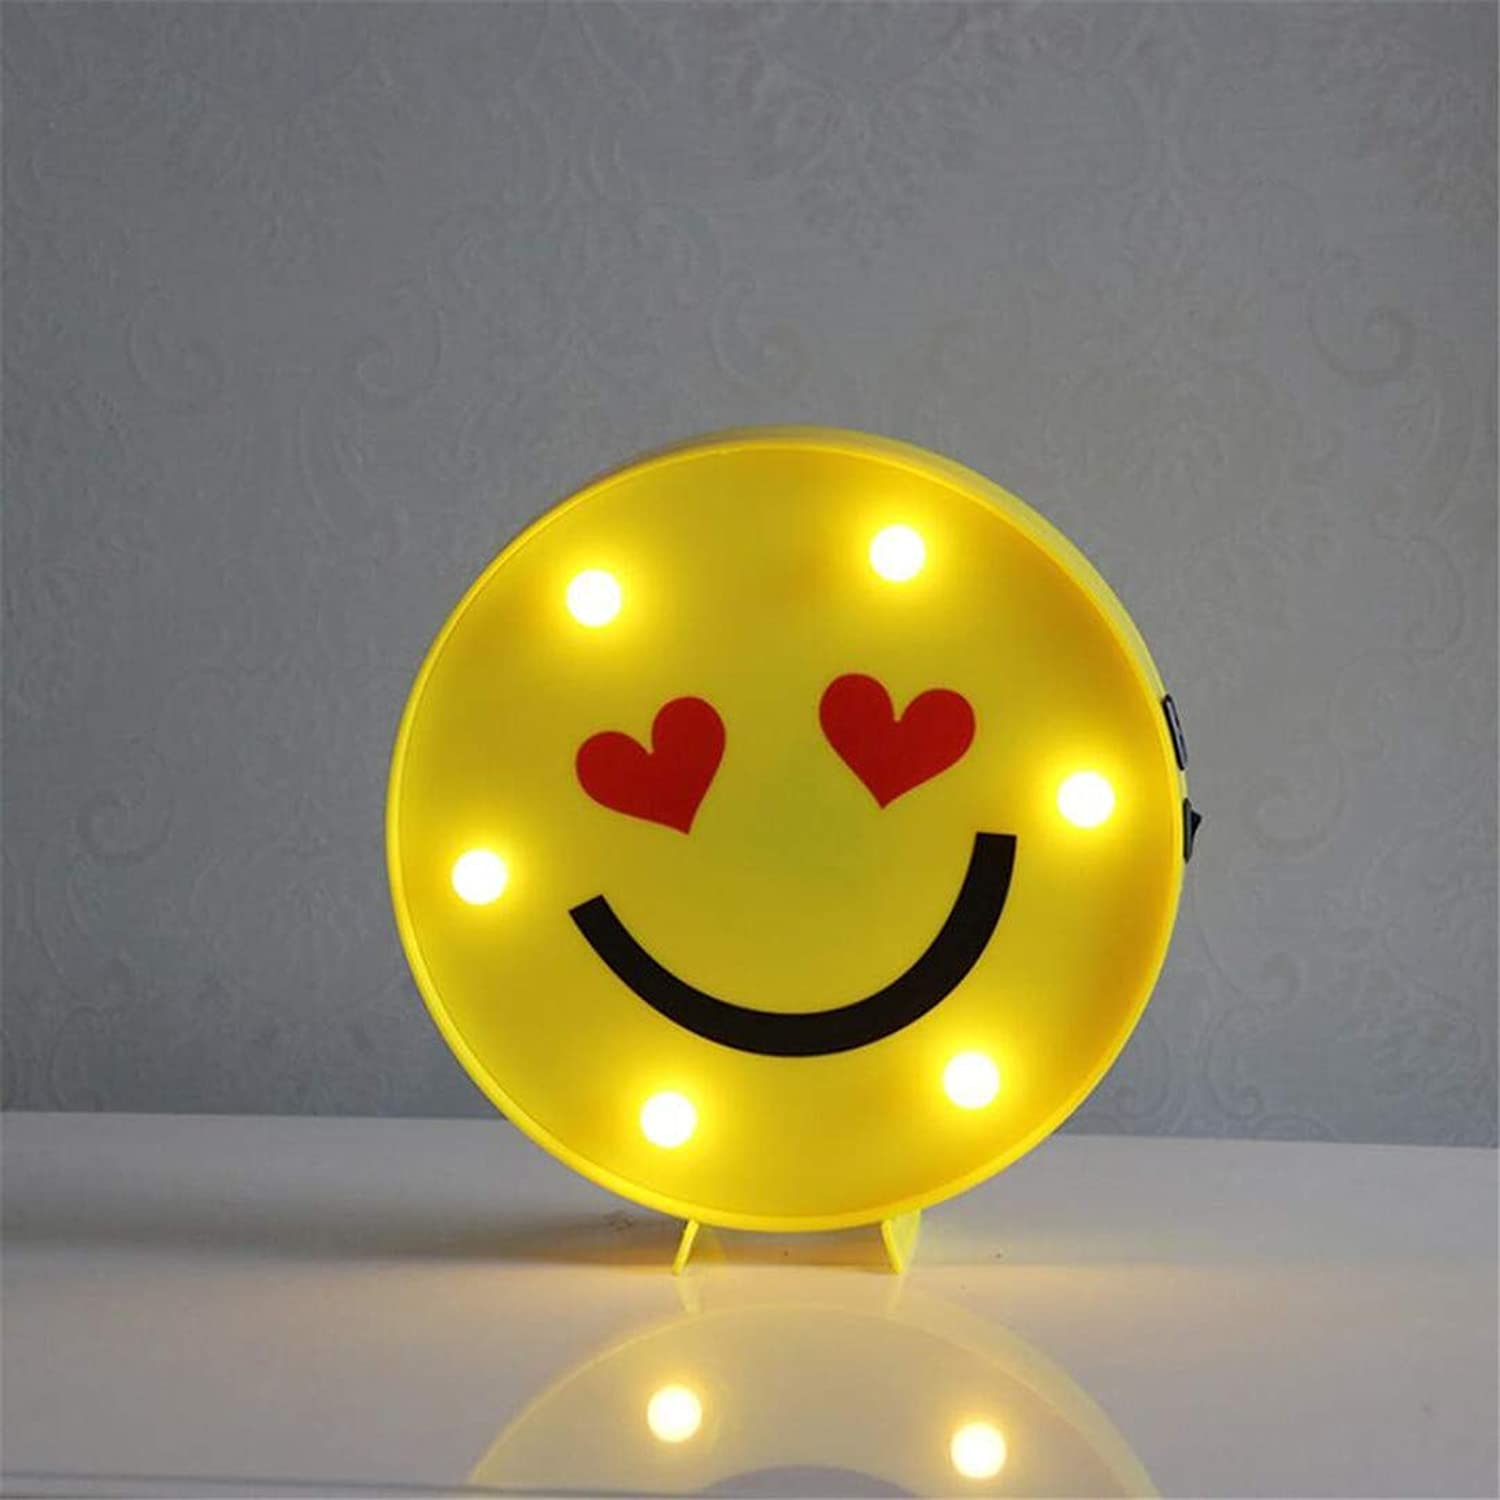 QiXian Ceiling Light Ceiling Lamps Night Lamps Qq Expression Series Modeling Lamp Birthday Gift Small Night Lamps Funny Smiley Expression Package to Send Male and Female Friends